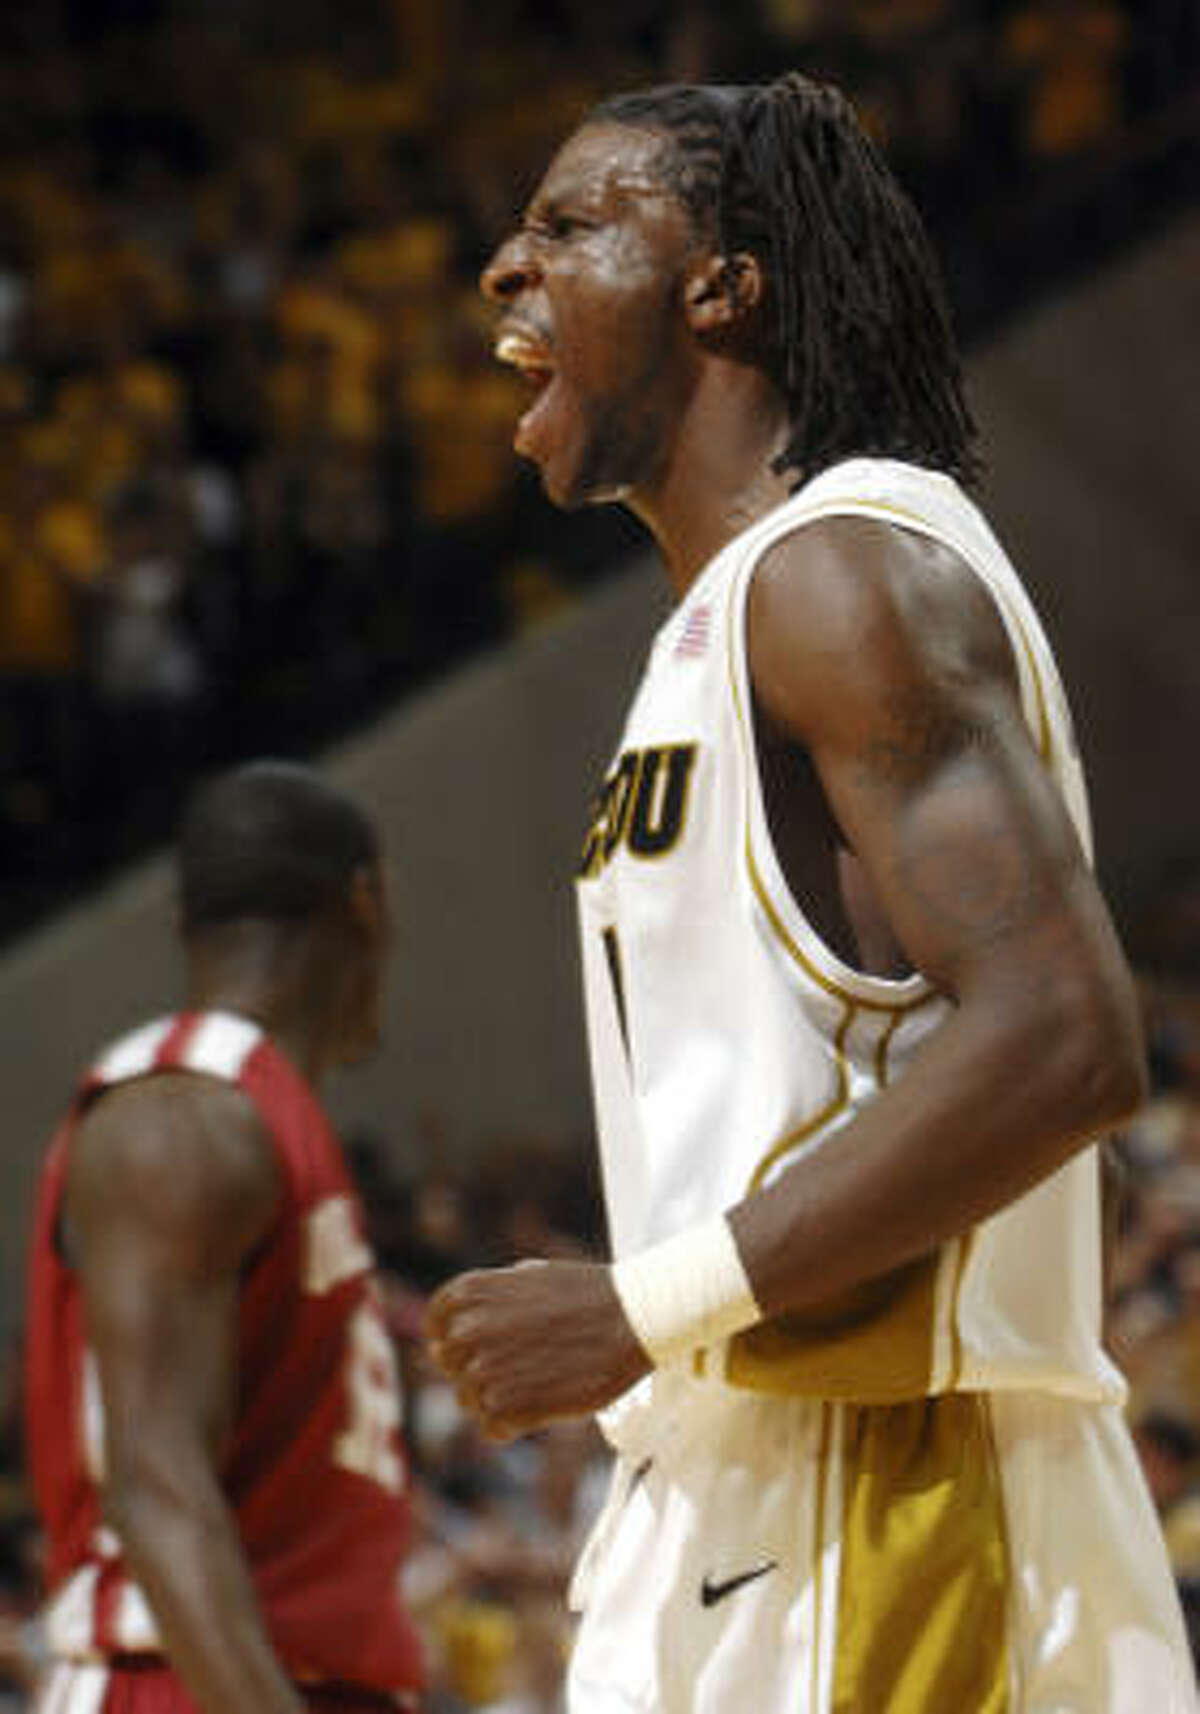 Missouri's DeMarre Carroll reacts after making a basket while getting fouled. Missouri won the game 73-64.